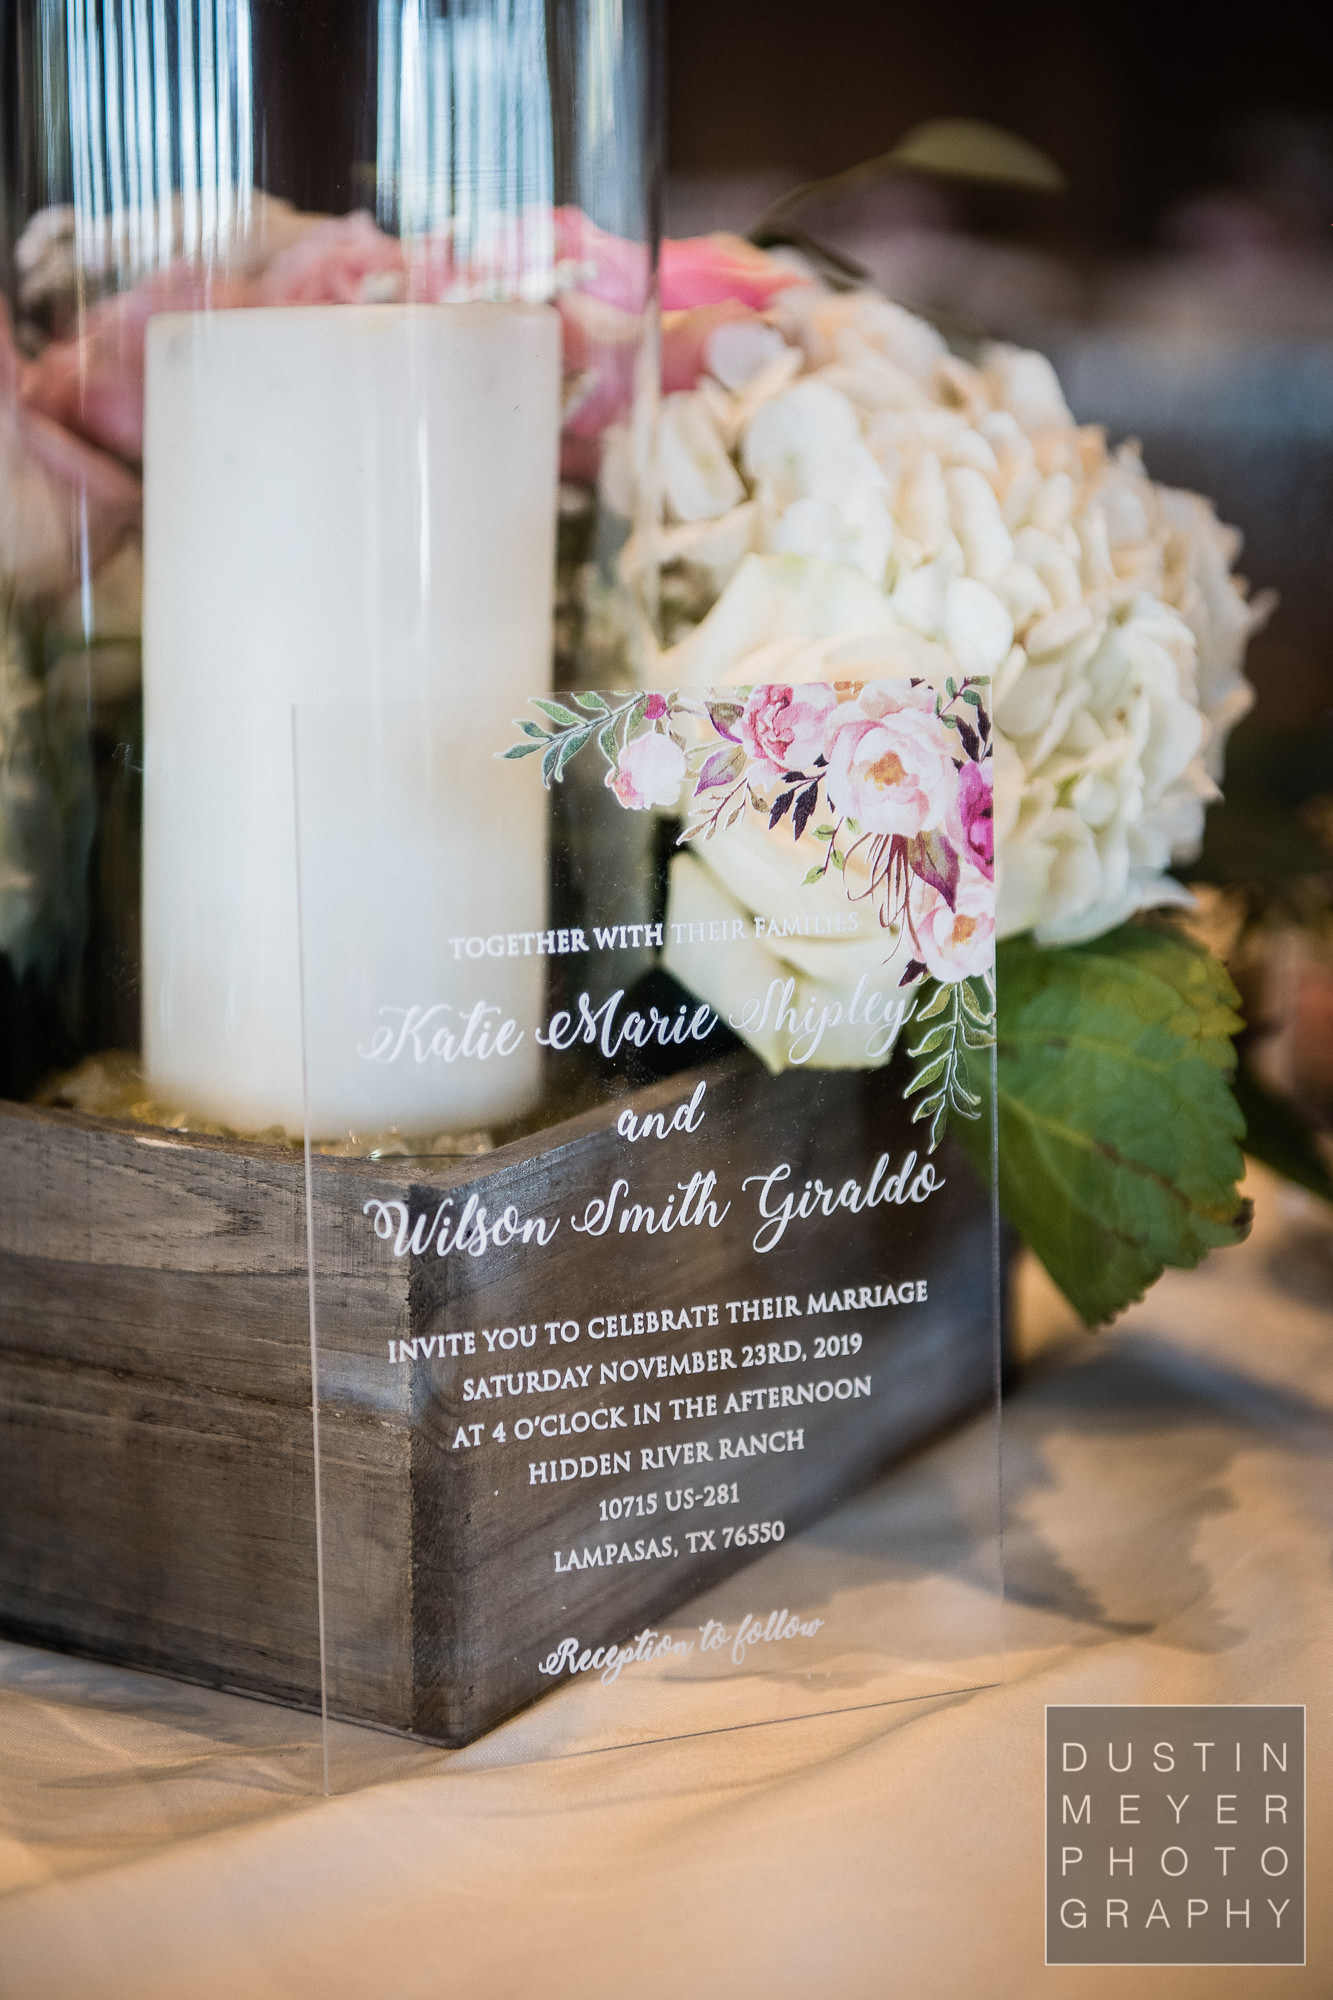 A unique personalized wedding invitation with wedding flowers